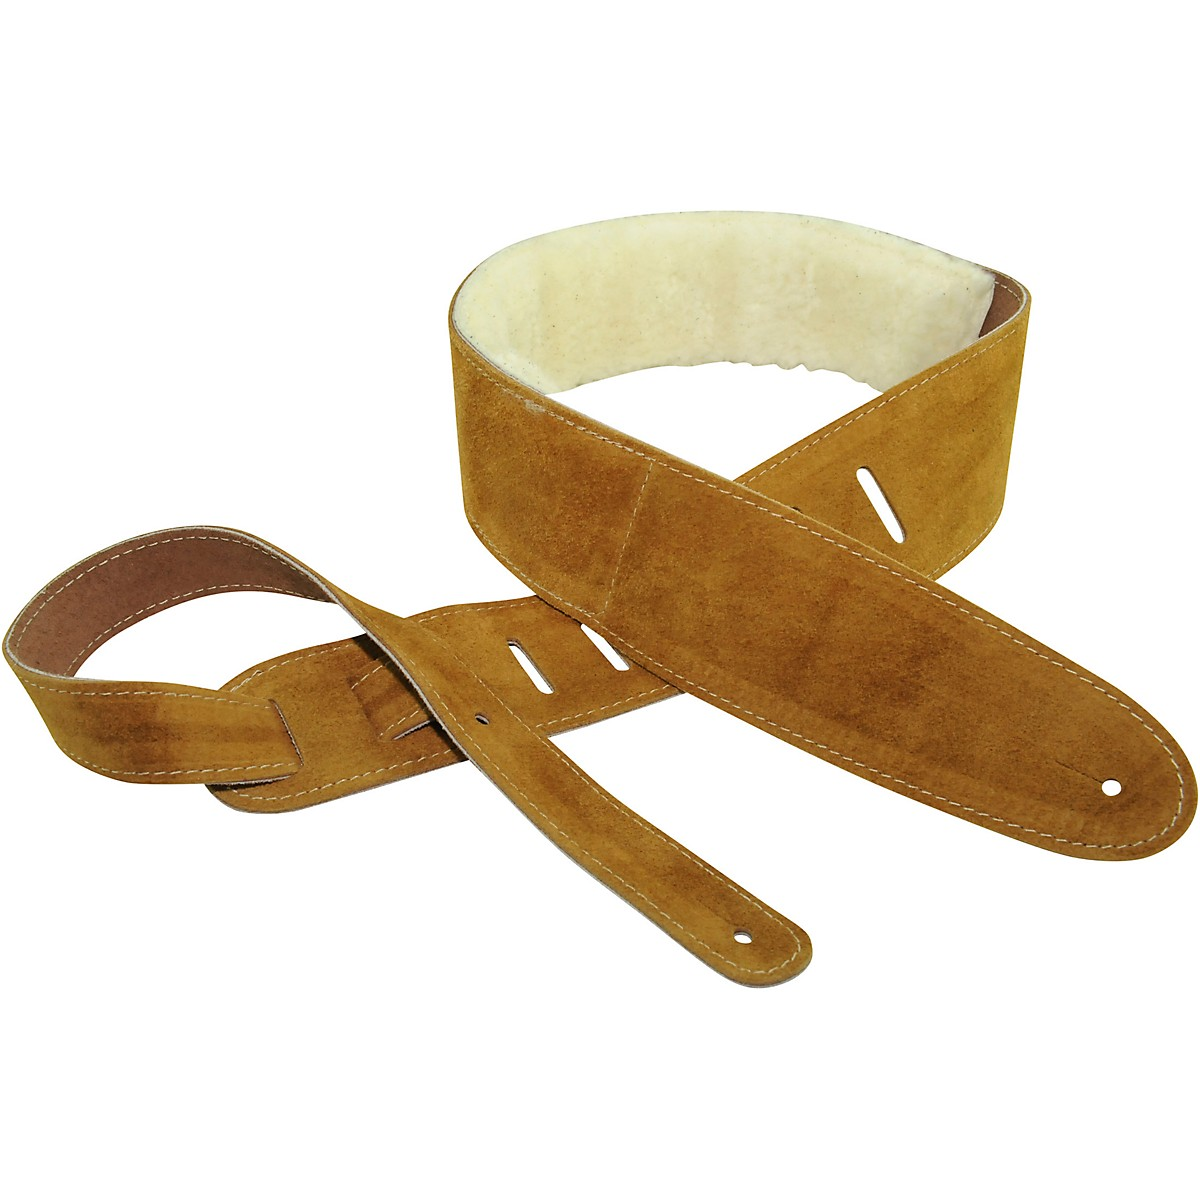 Perri's Suede With Sheep Skin Guitar Strap